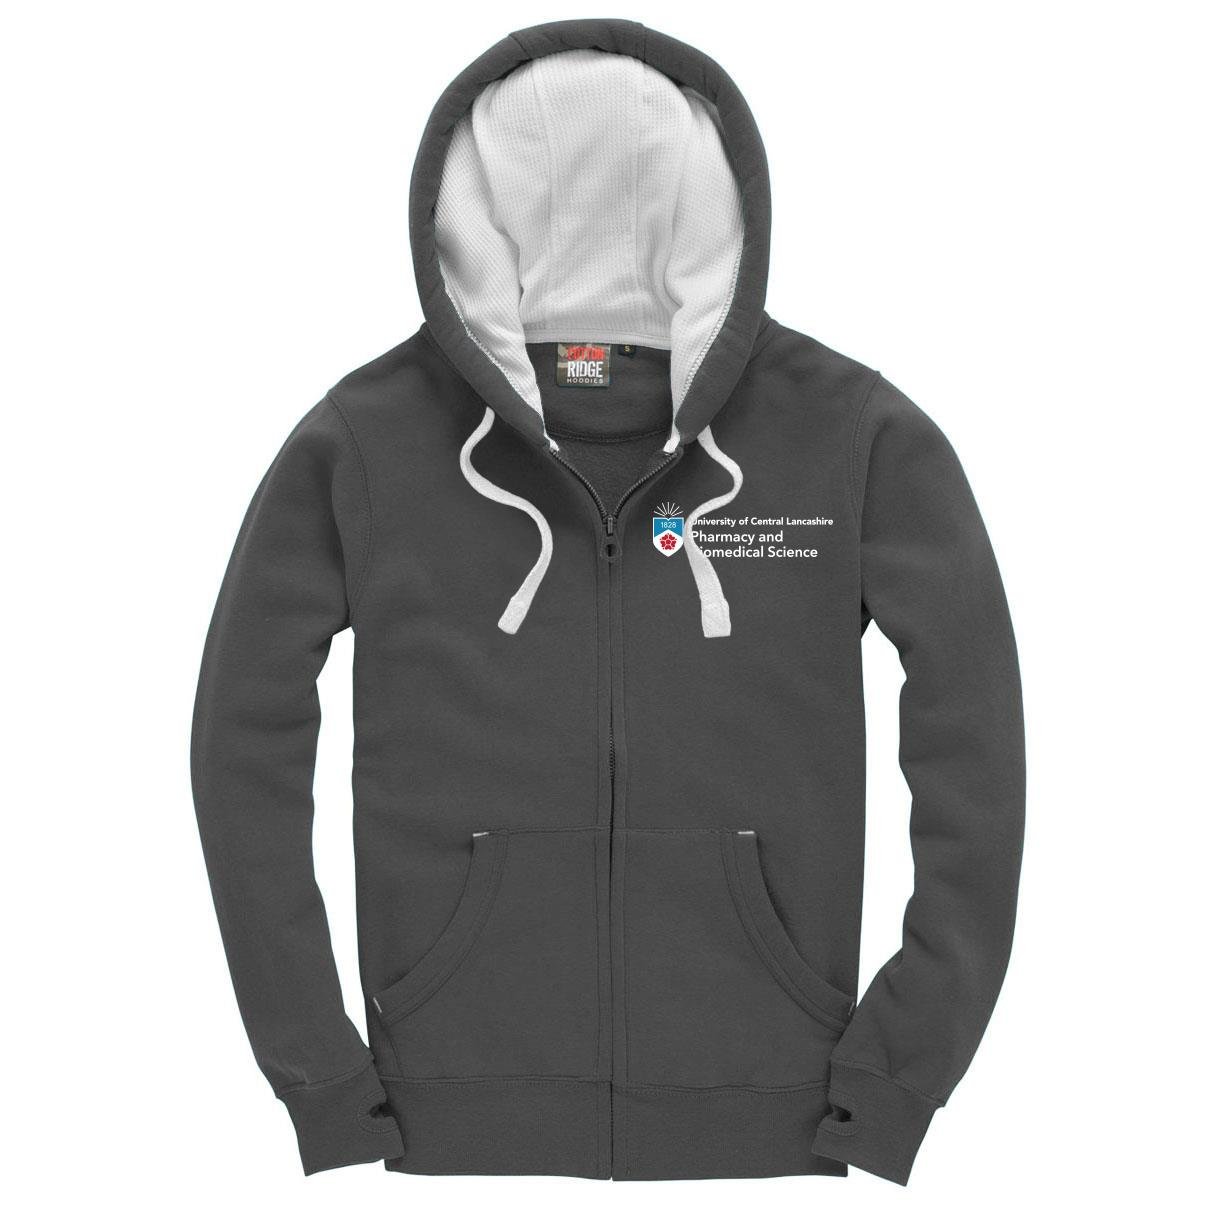 Ultra Soft Feel Hooded Top  - Pharmacy and biomedical sciences